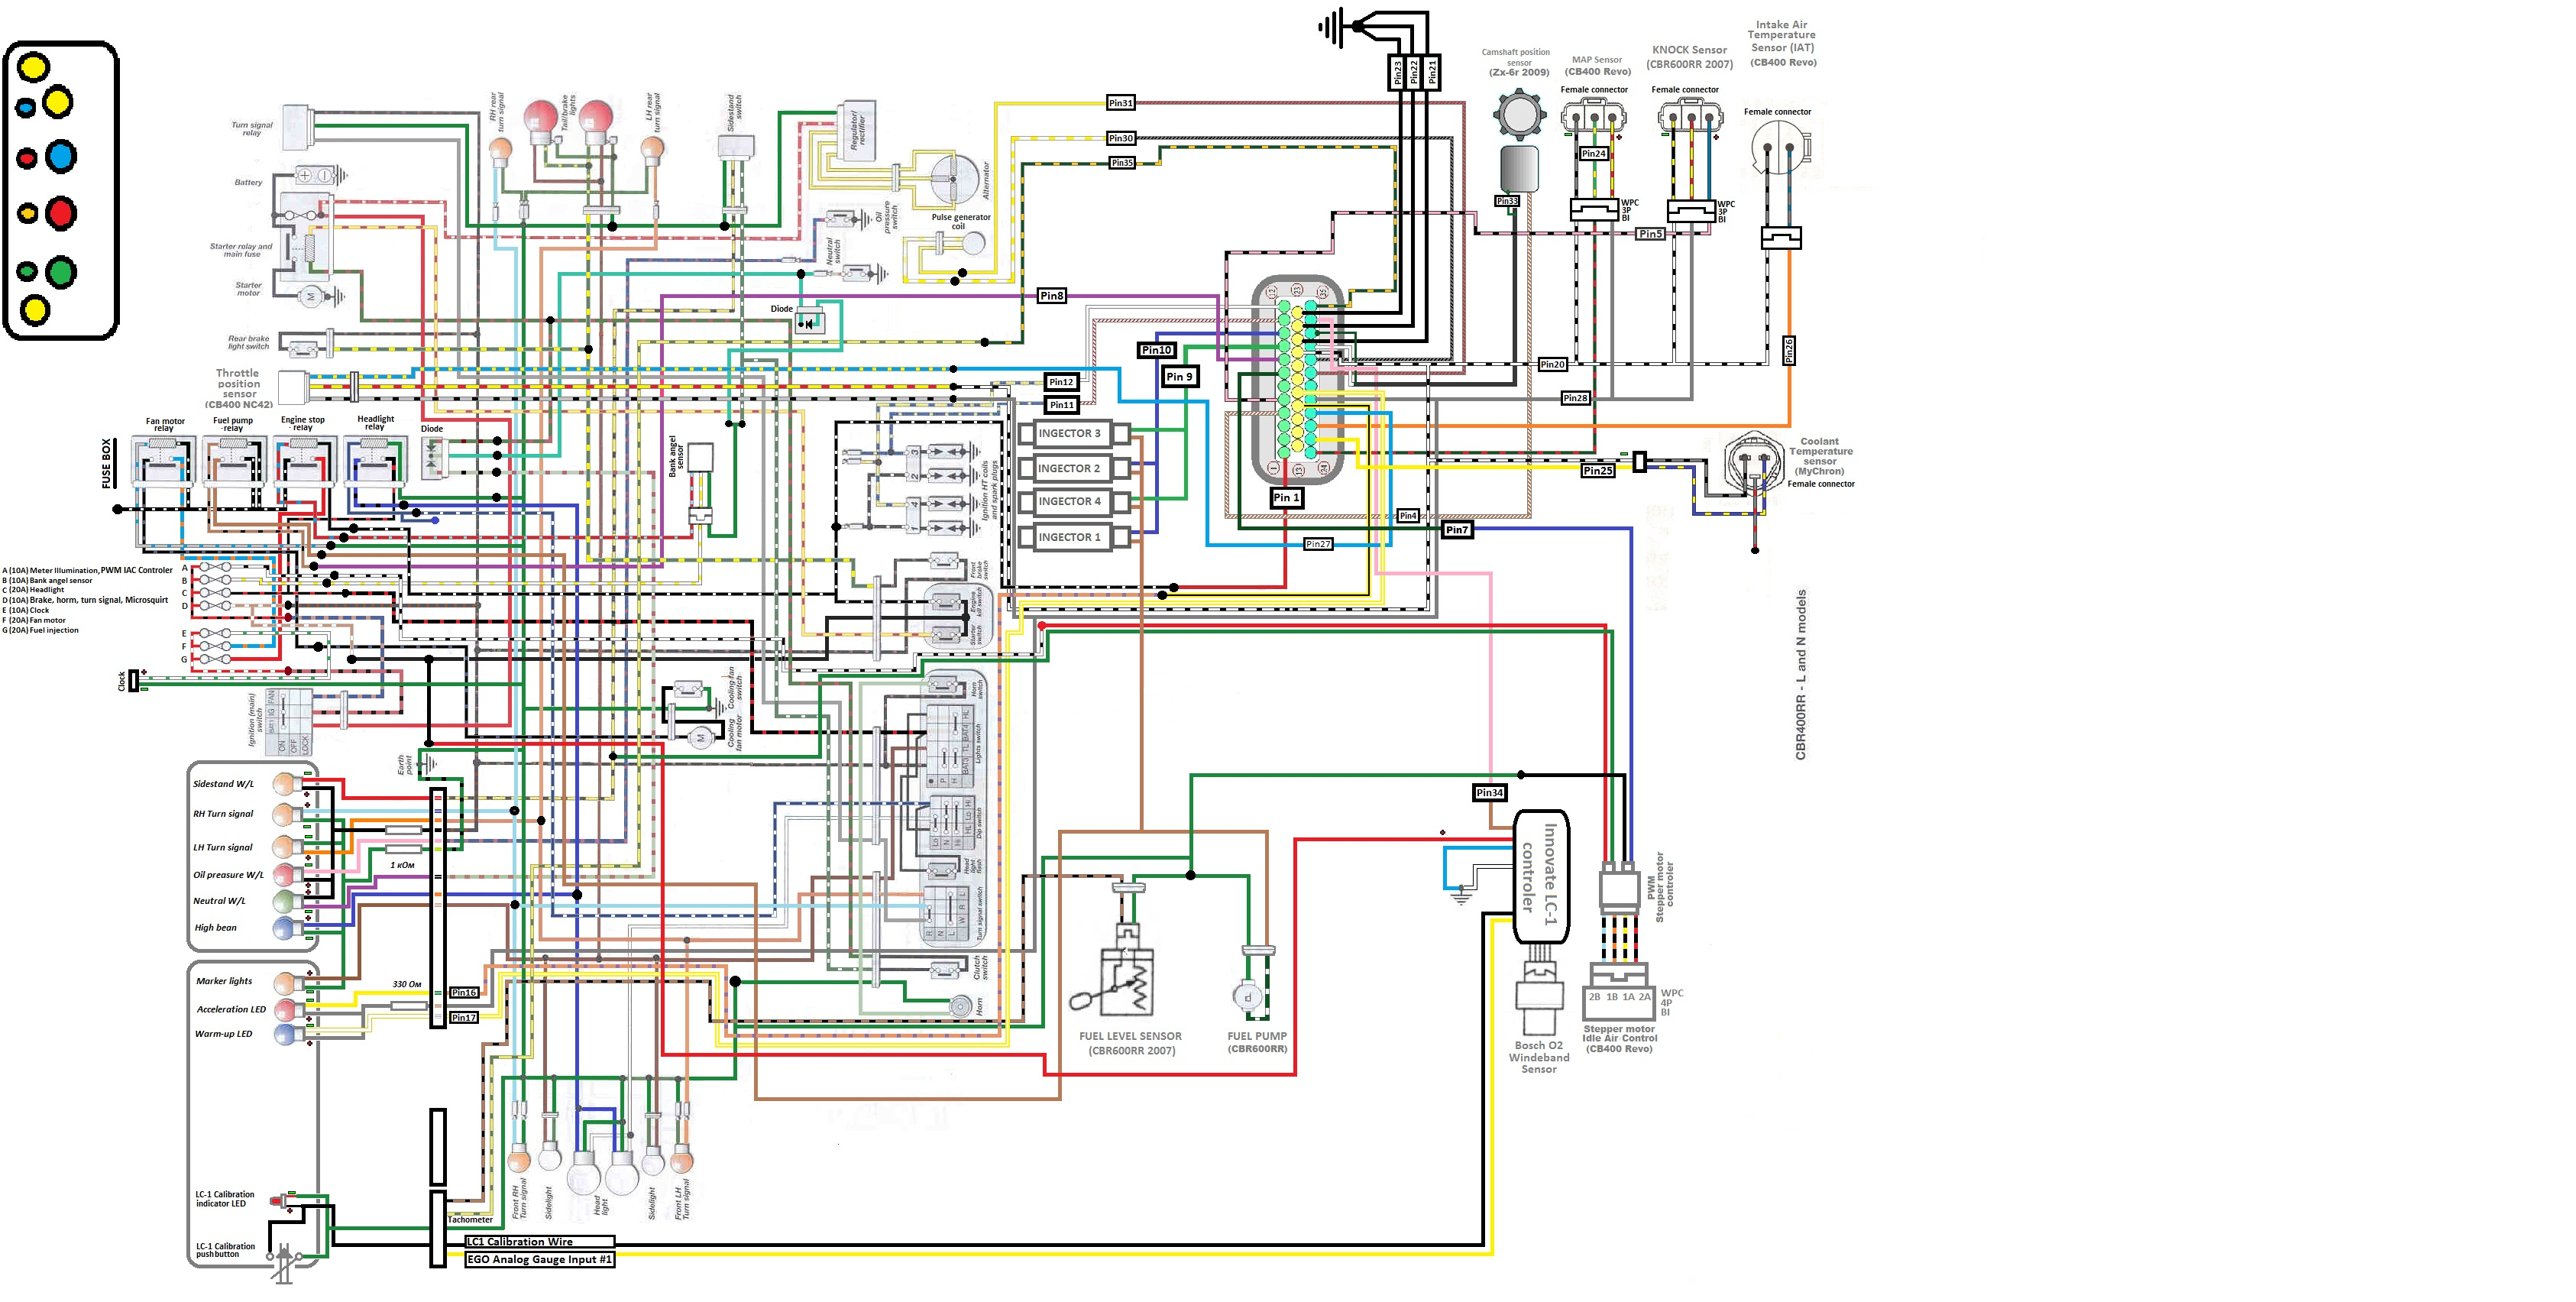 CBR400RR_NC29_Microsquirt_wiring_loom motorcycle wiring diagrams zzr 400 wiring diagram at gsmportal.co